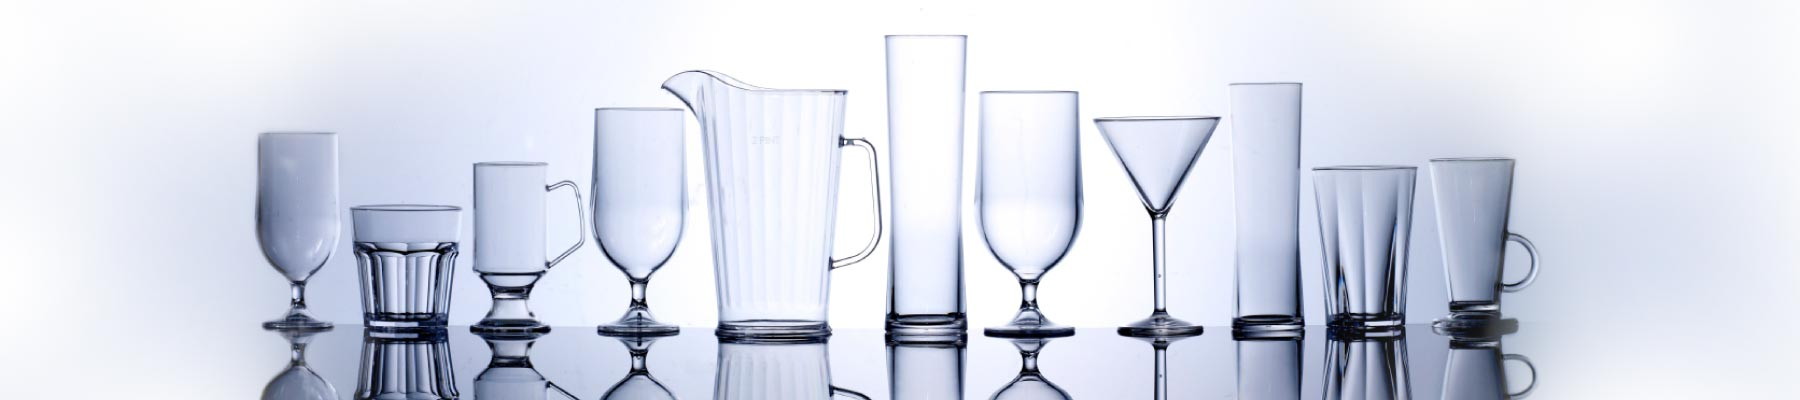 Large plastic glassware suppliers in Hampshire